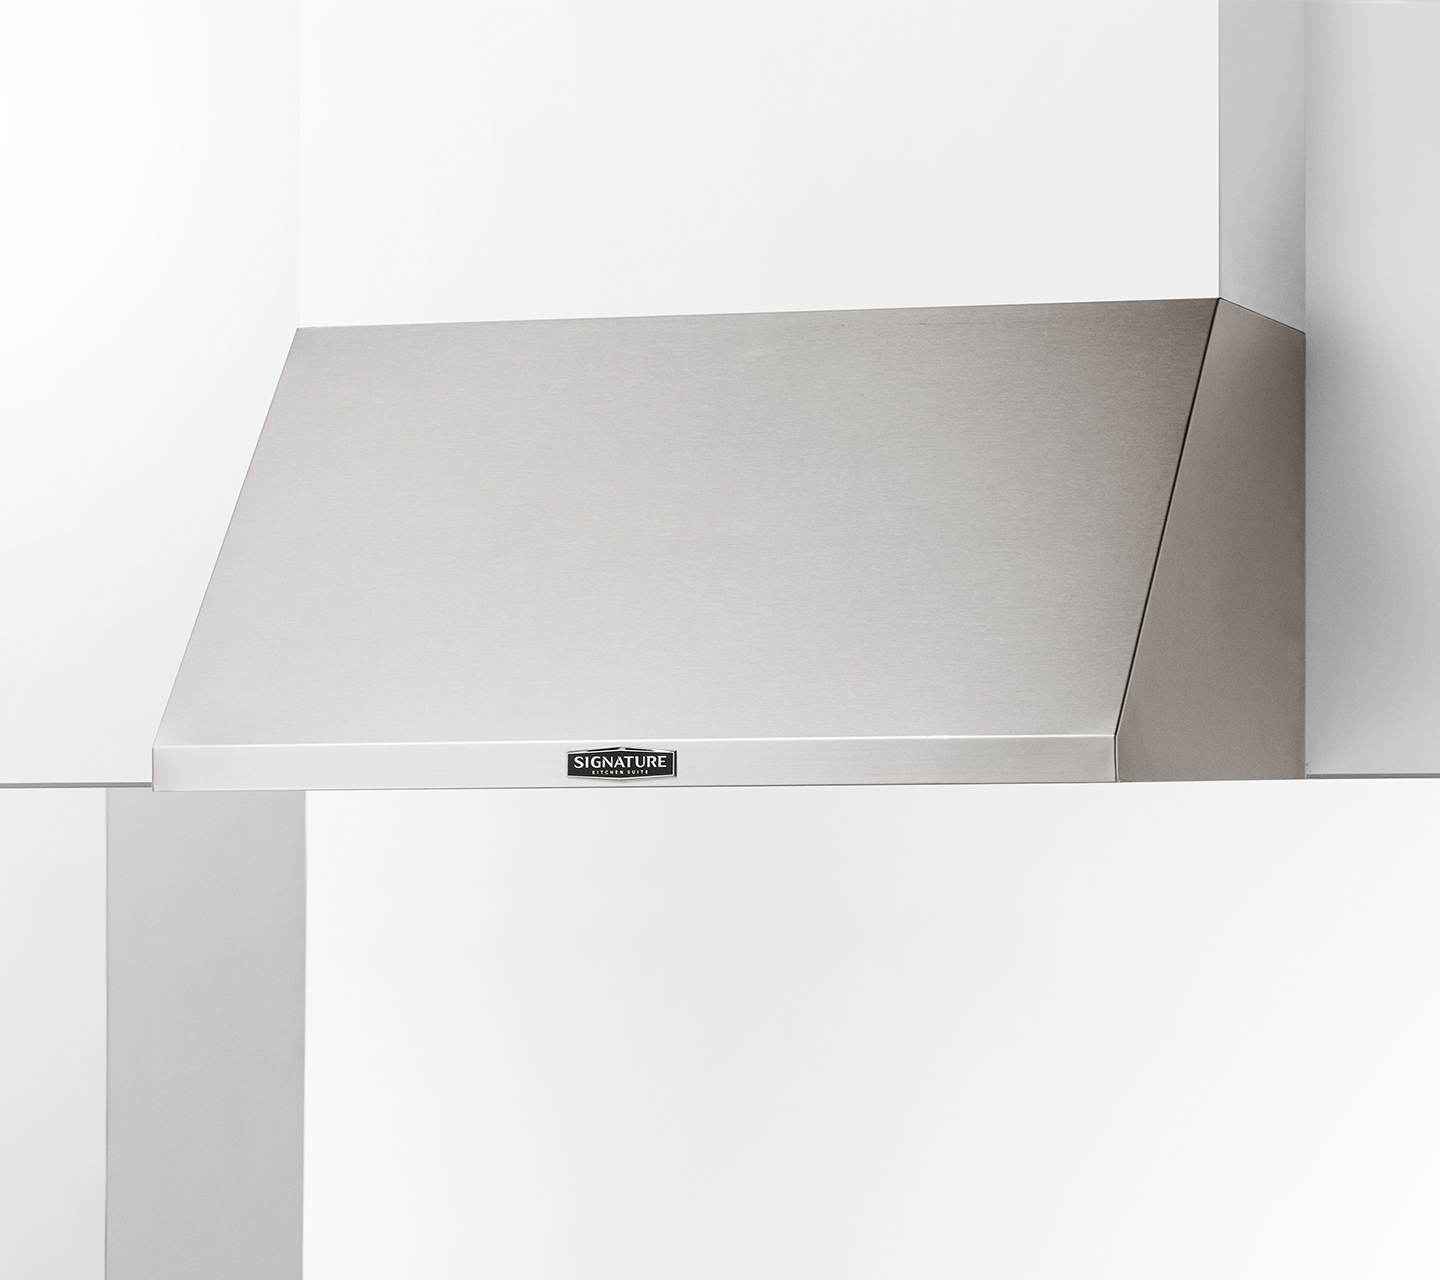 36-inch Hood Ventilation from Signature Kitchen Suite